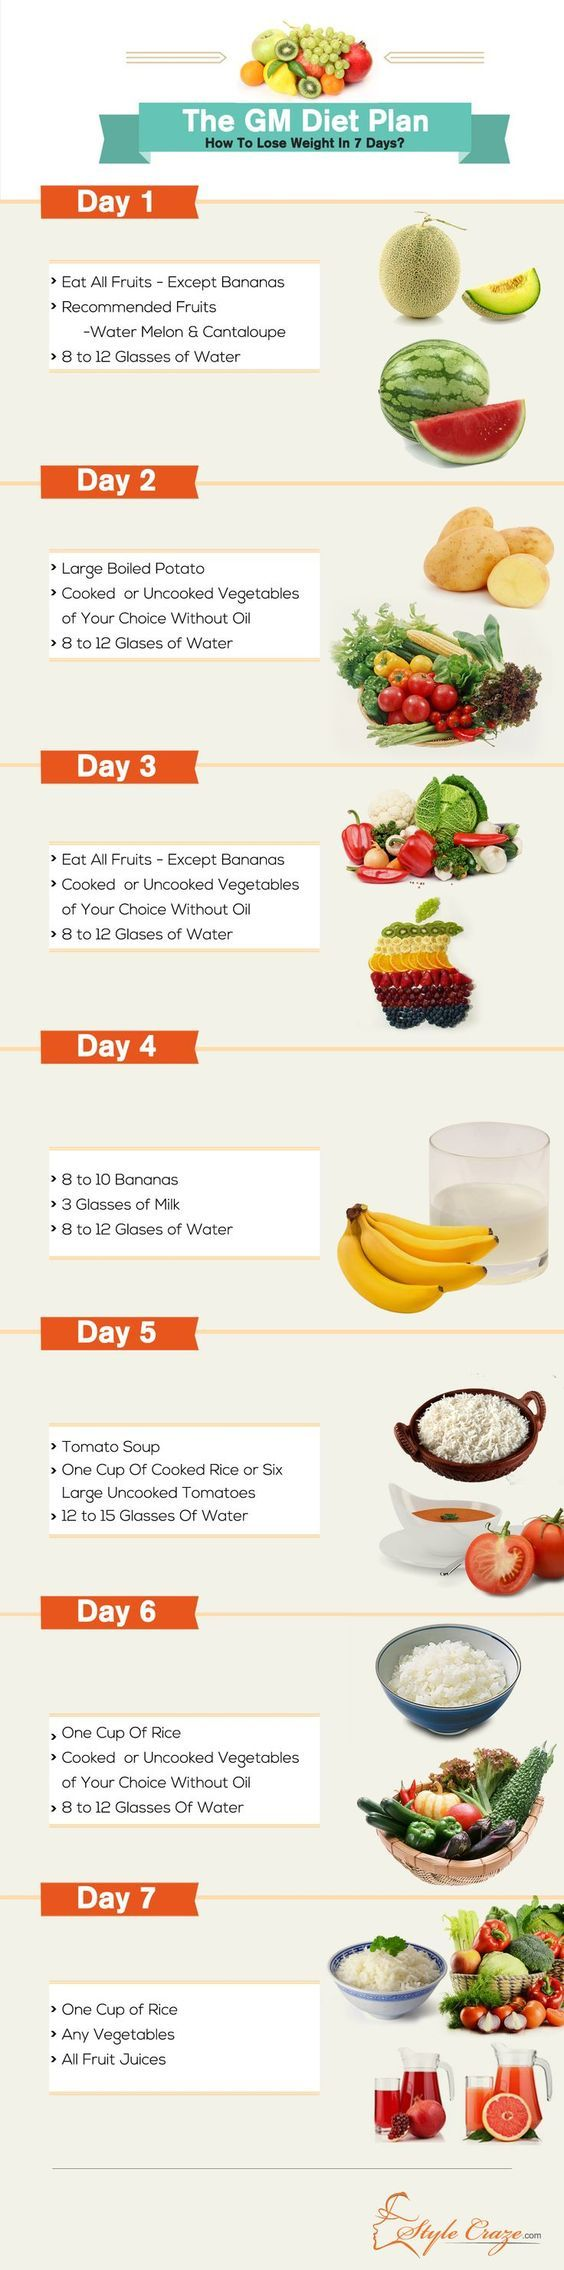 Diet chart for weight loss weight loss healthy life ideas diet treating diabetes type 1 doctors who specialize in diabetes nvjuhfo Images